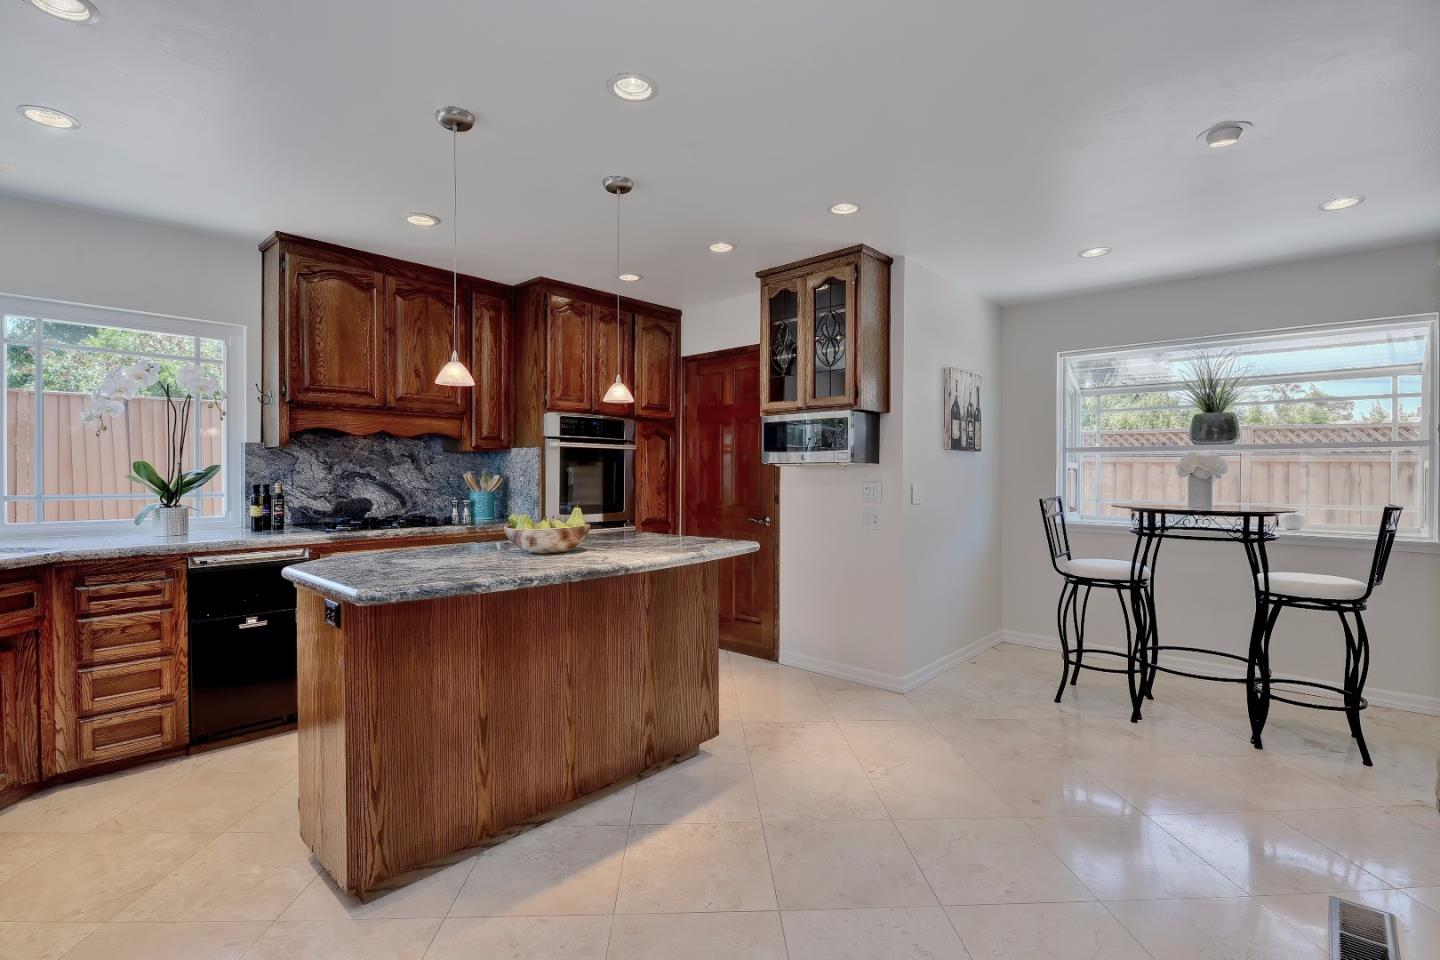 Additional photo for property listing at 1210 Hamida Court  San Jose, カリフォルニア 95120 アメリカ合衆国